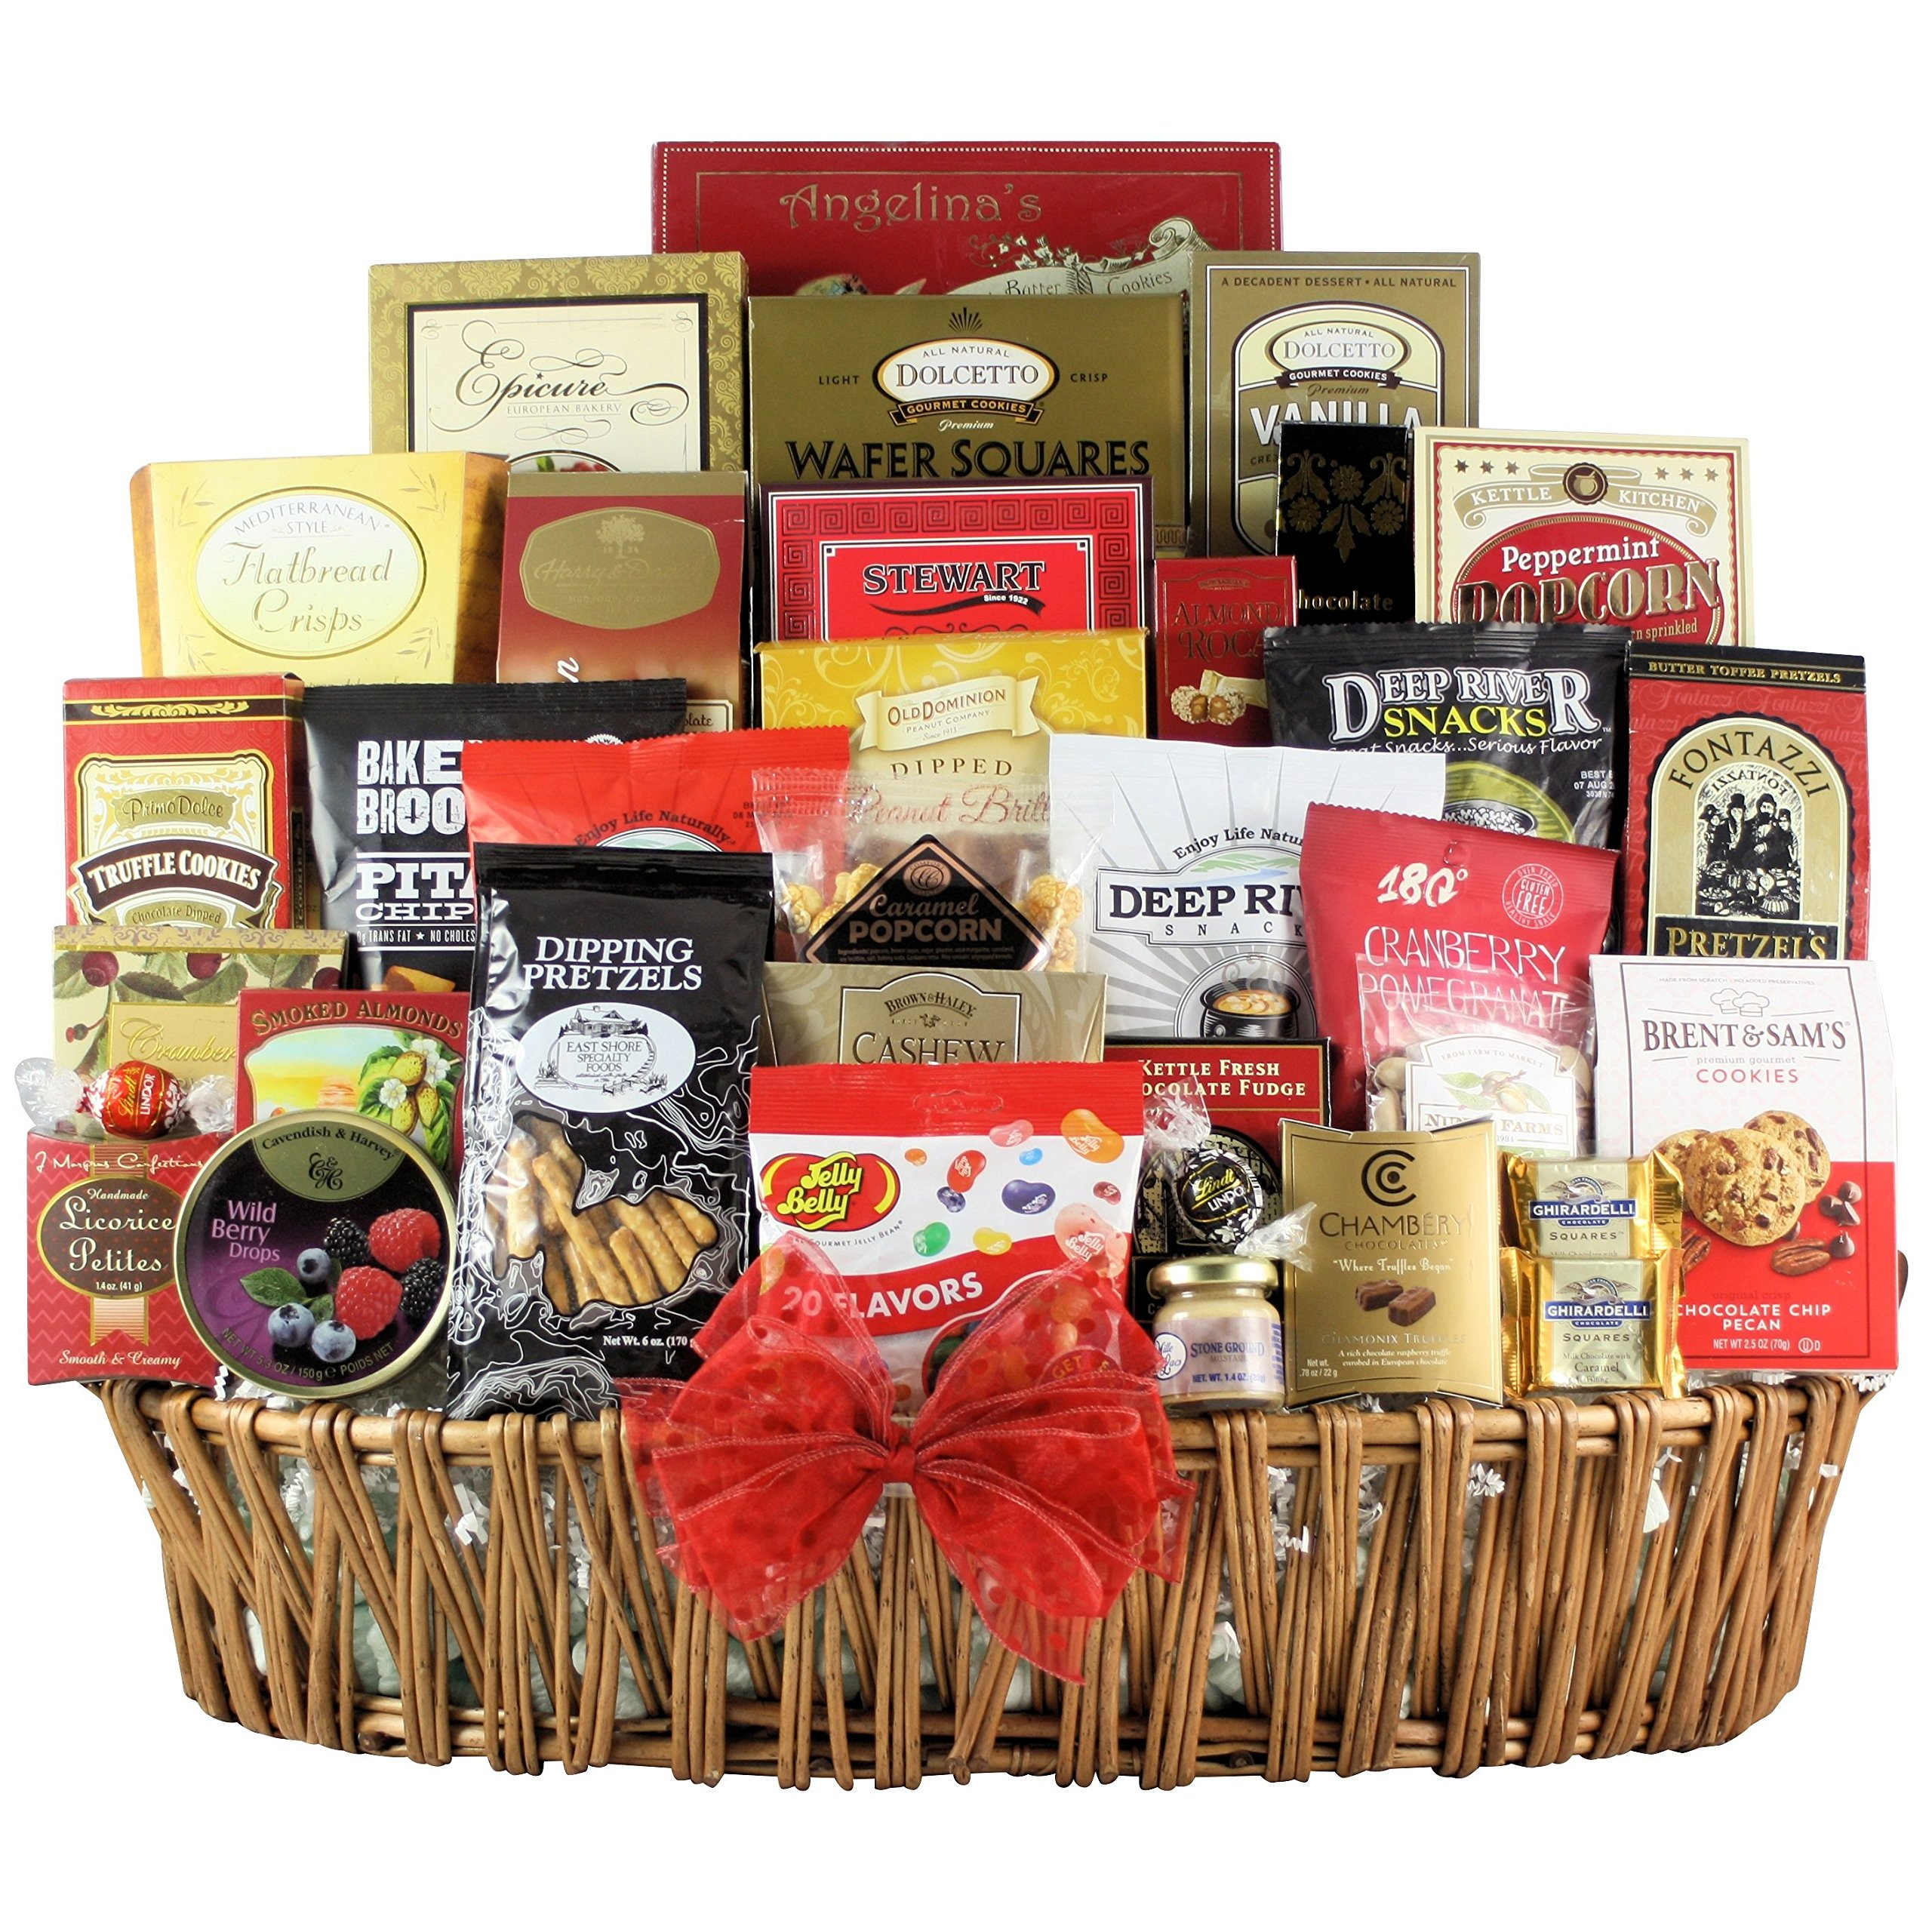 GreatArrivals Gift Baskets Magnificent Munchies Gourmet Snack Basket, 13 Pound by GreatArrivals Gift Baskets (Image #1)